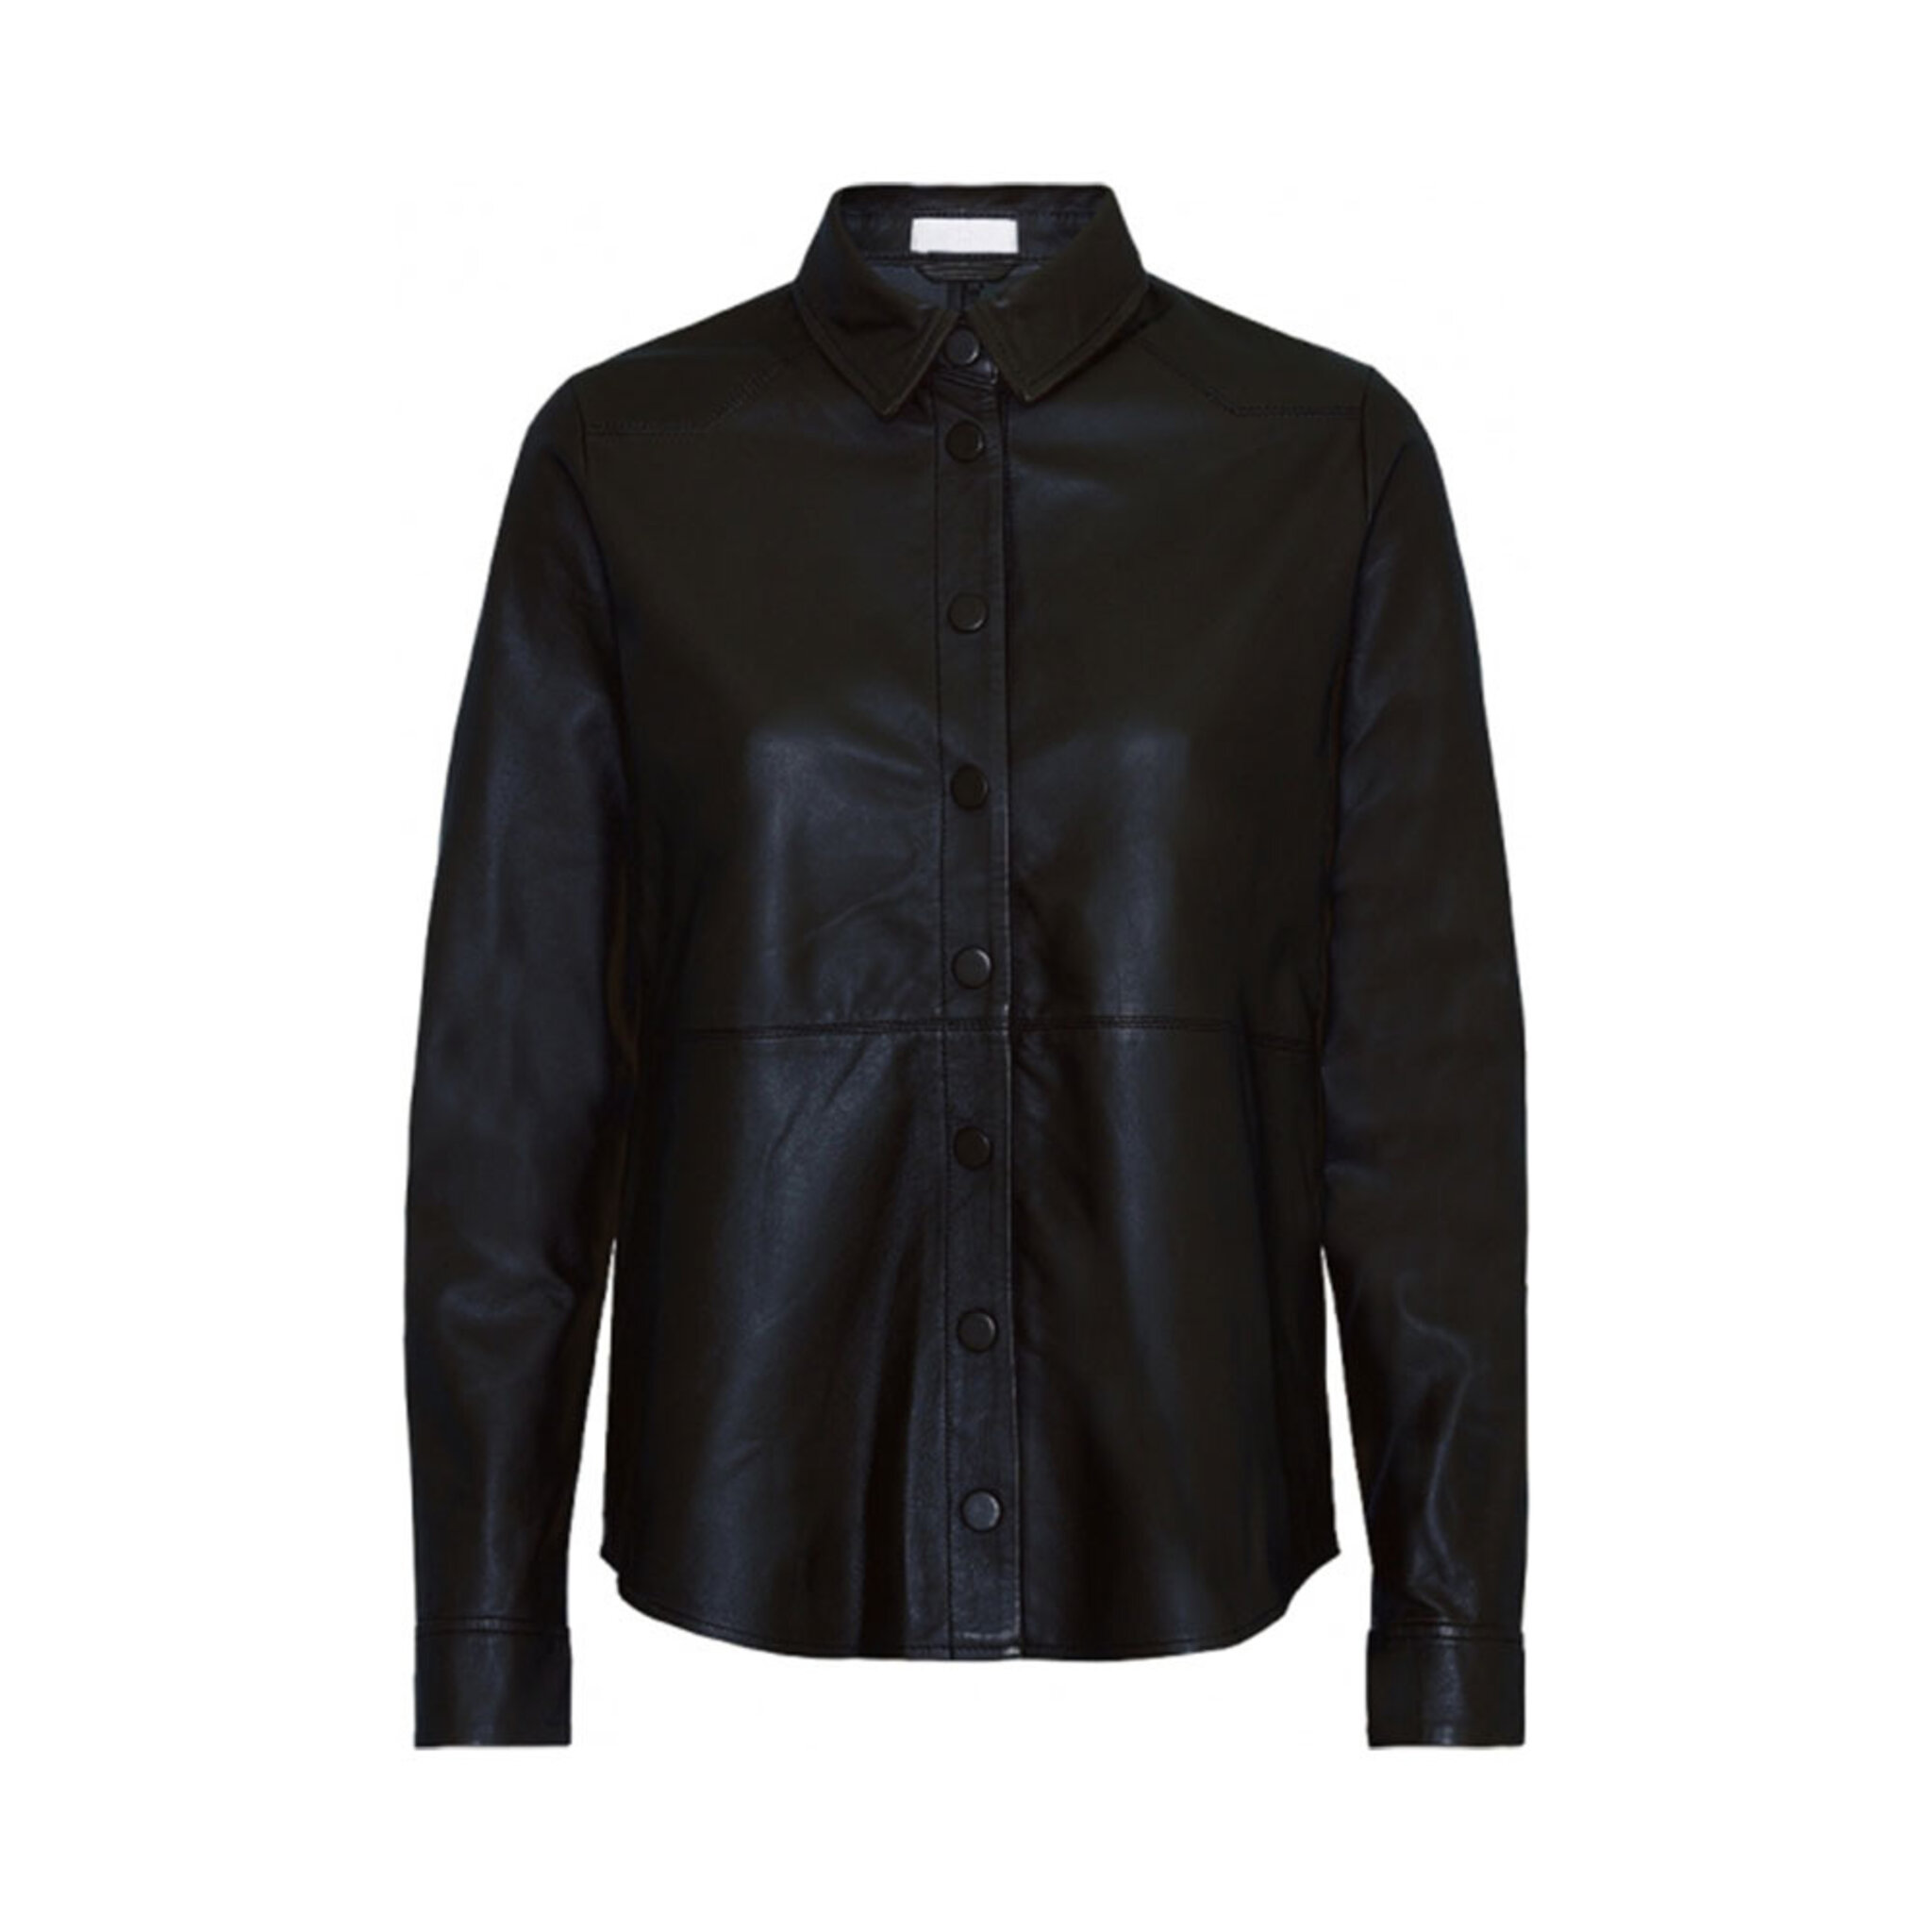 2ND Thurlow Leather Shirt